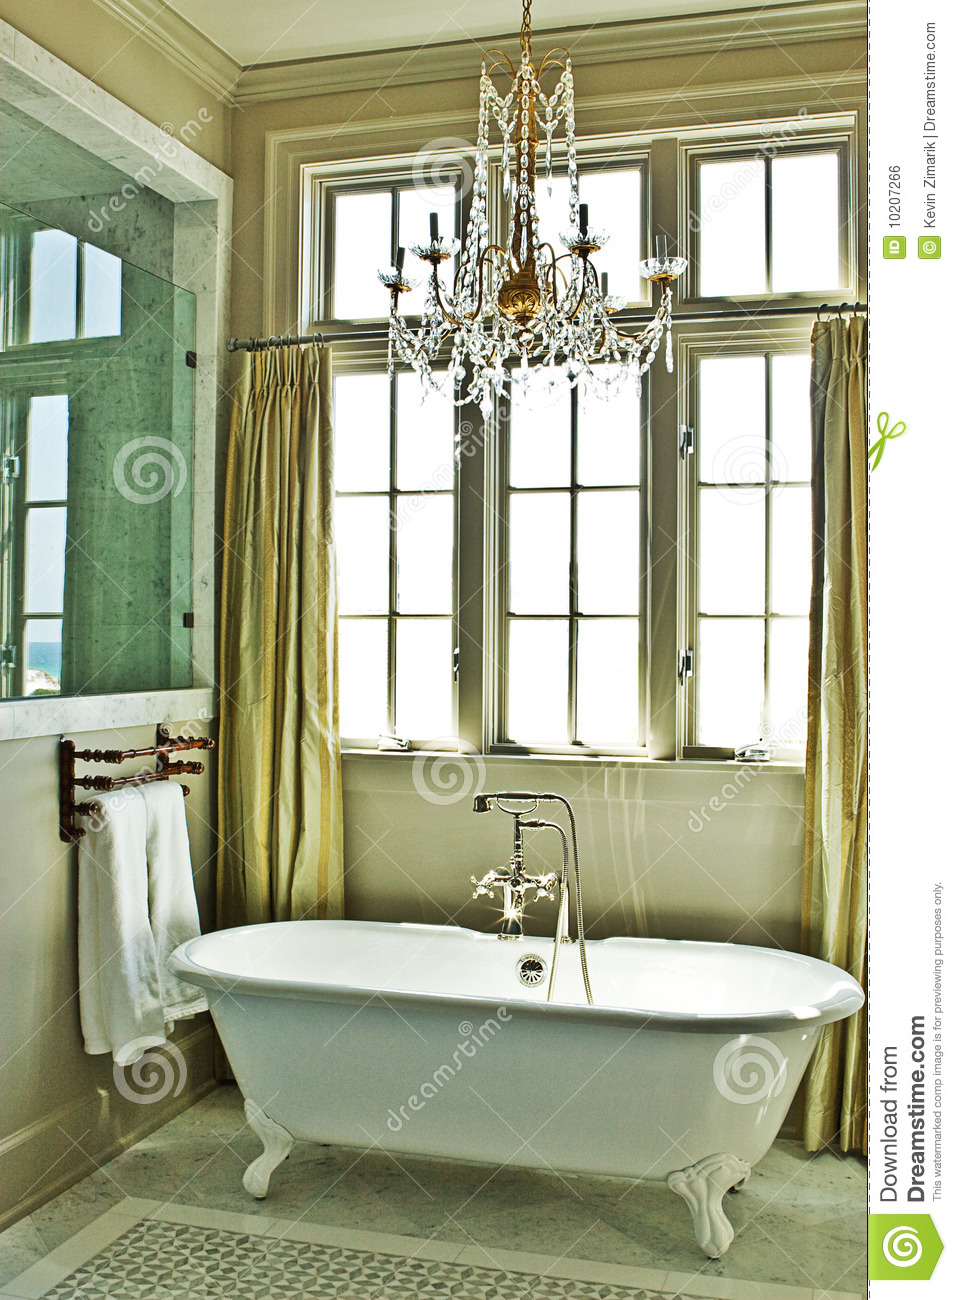 Baños Elegantes Con Tina:Elegant Bathroom with Clawfoot Tub